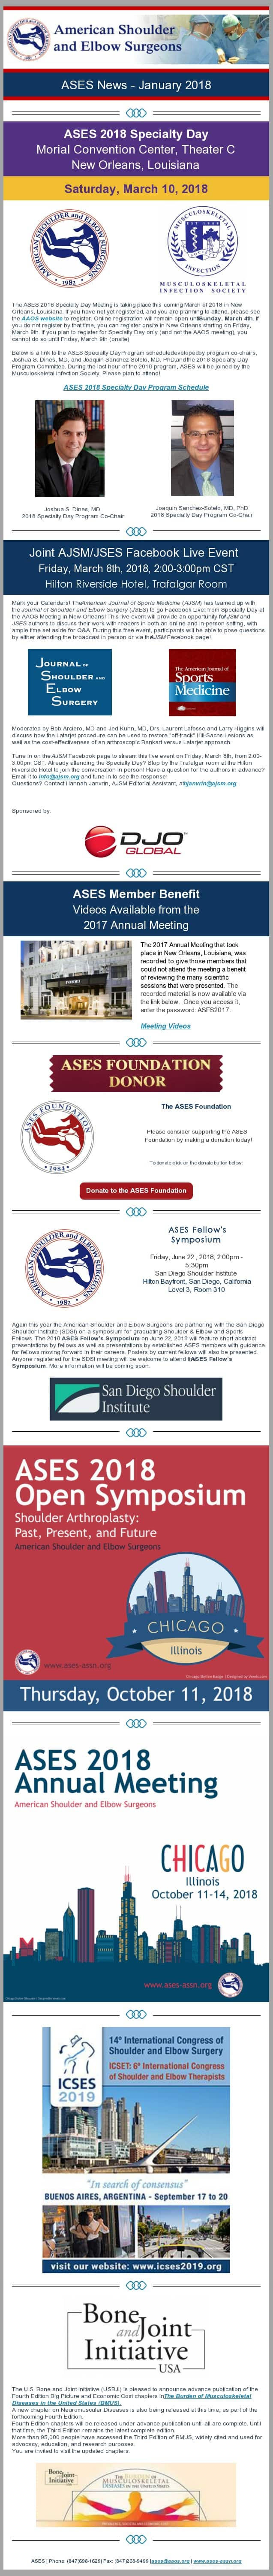 ASES News - January 2018